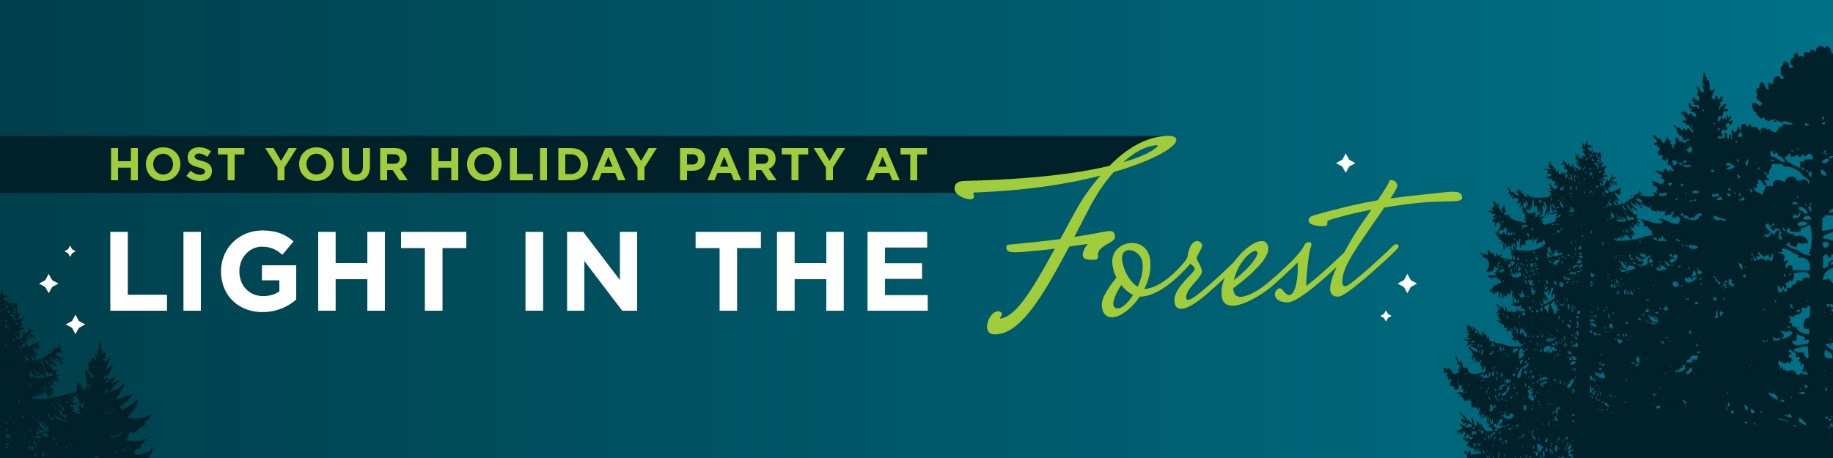 """A graphic banner that says """"Host your holiday party at Light in the Forest"""". Graphic has silhouettes of evergreen trees on a dark blue background."""